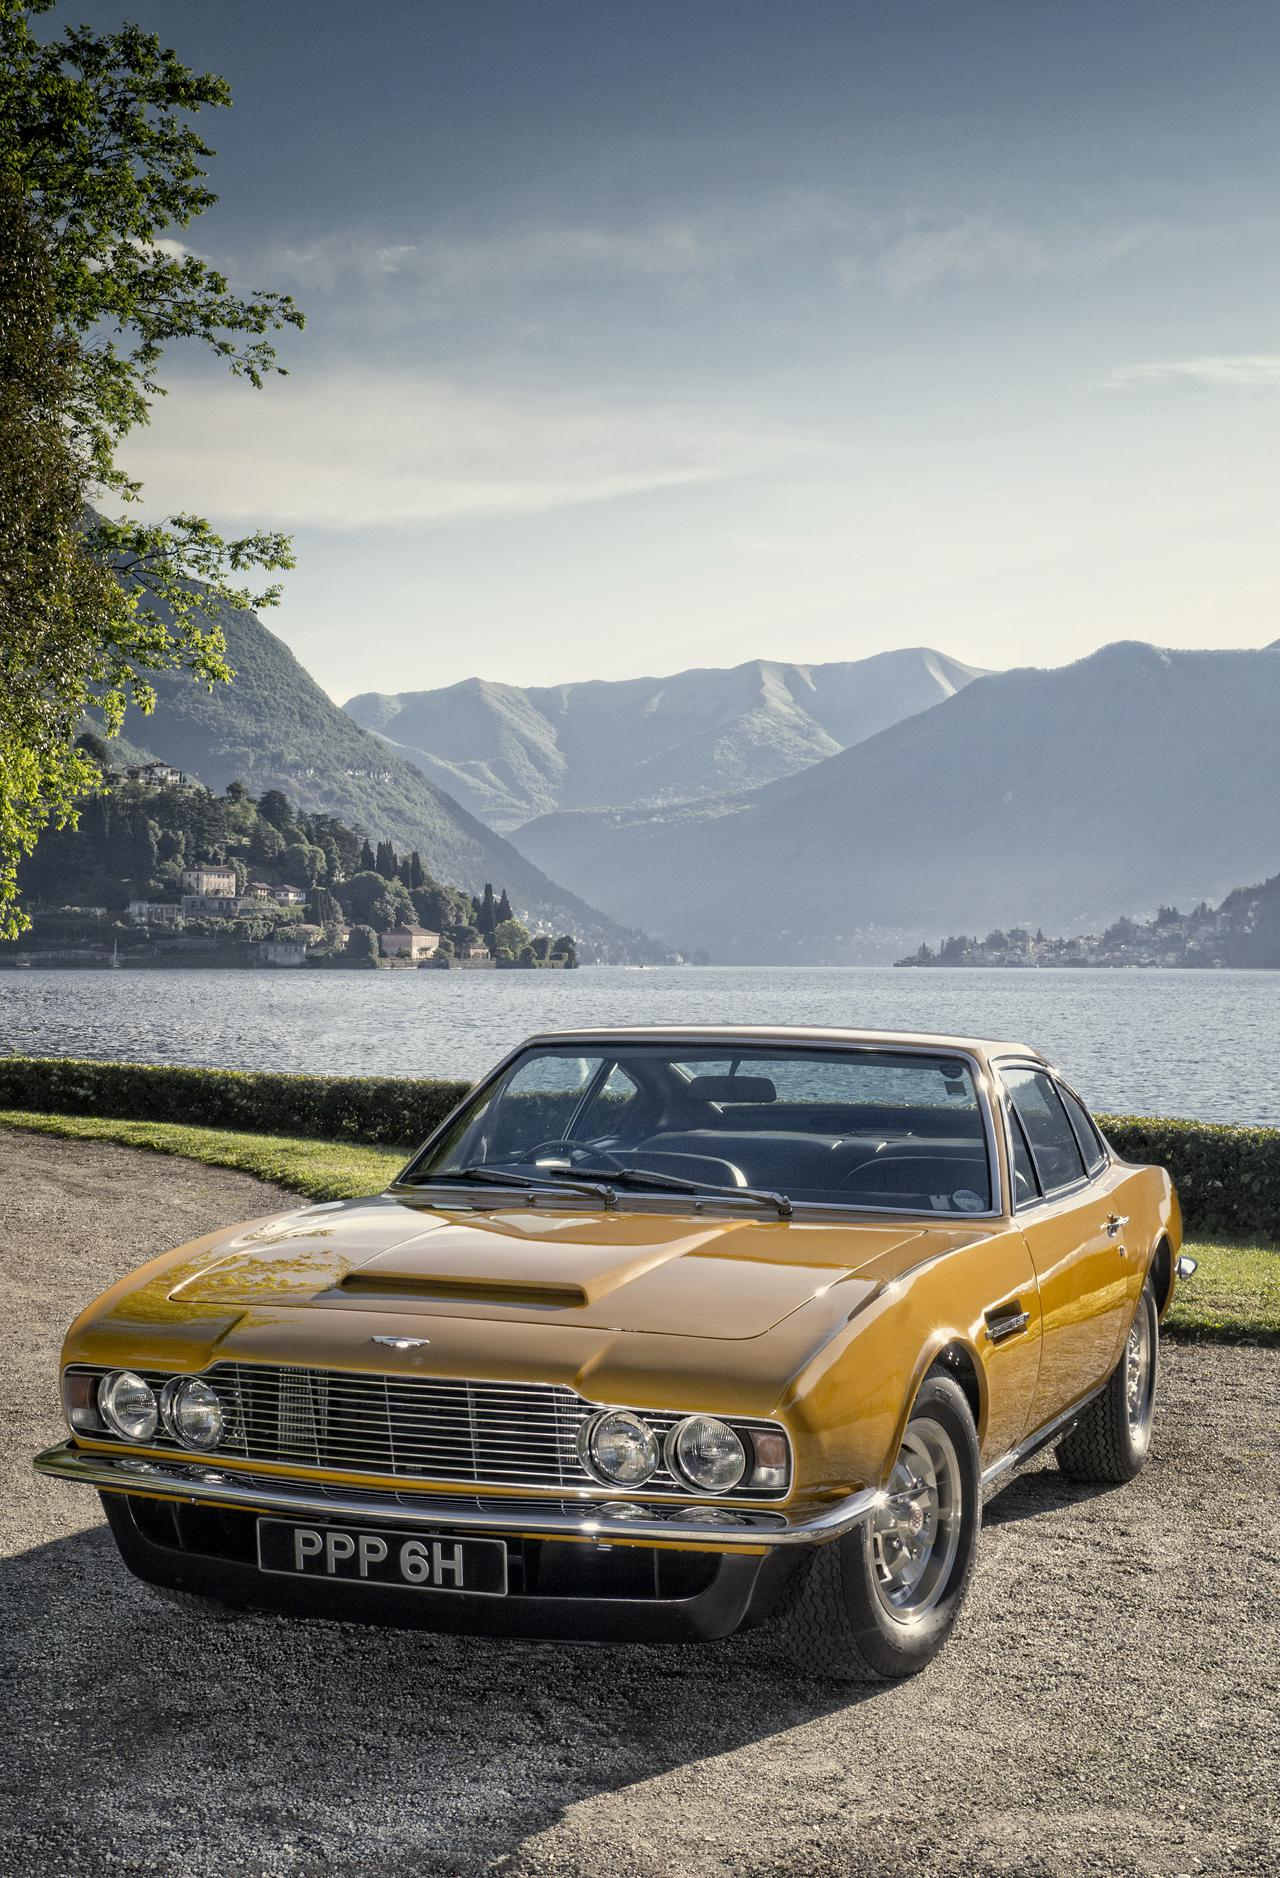 roger moore 39 s 1970 aston martin dbs sells. Black Bedroom Furniture Sets. Home Design Ideas